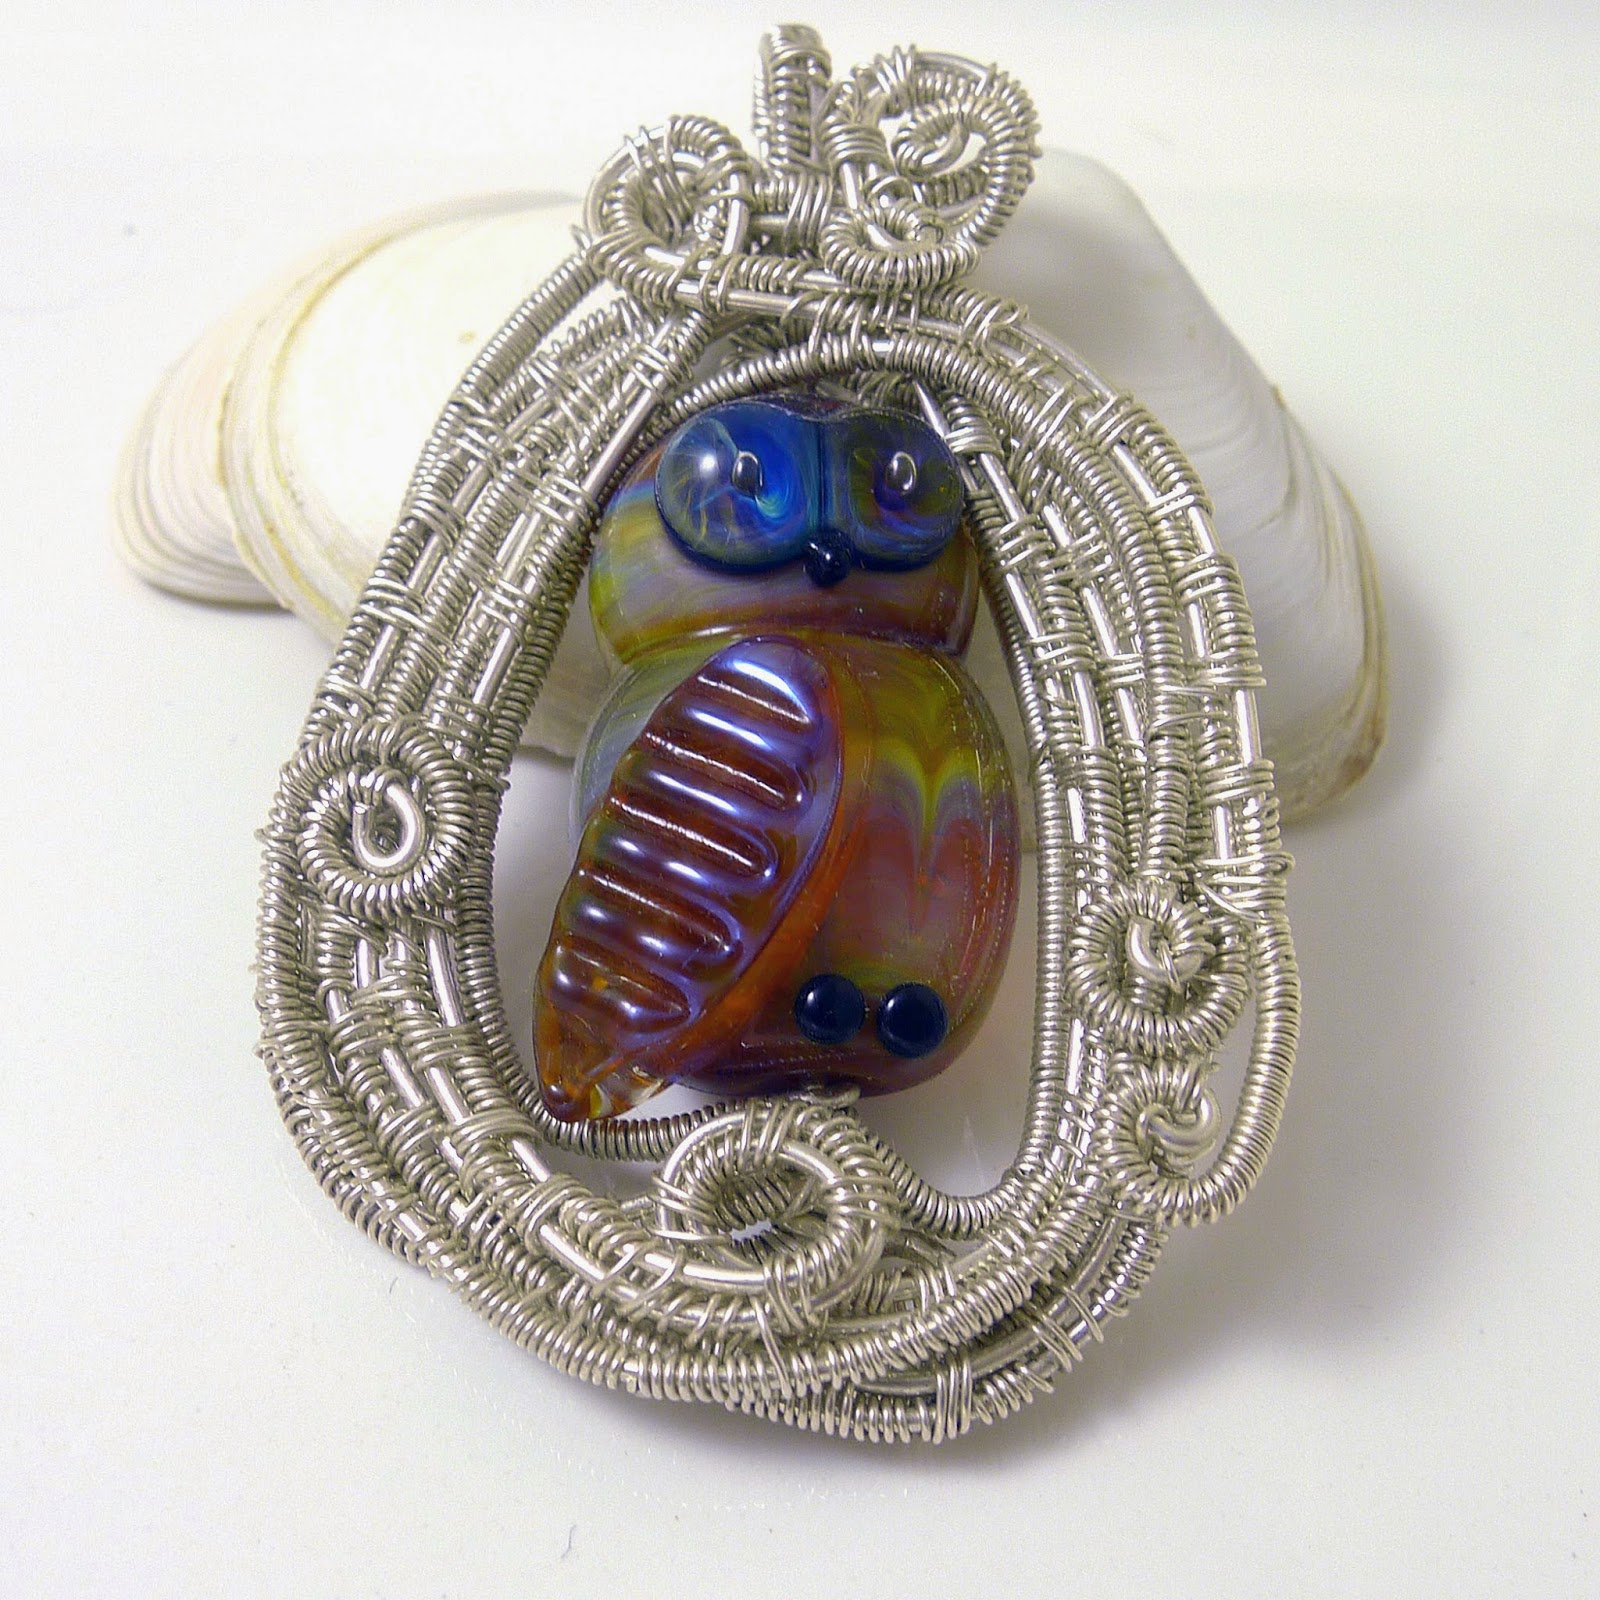 https://www.etsy.com/listing/183603900/lampwork-owl-and-sterling-silver-pendant?